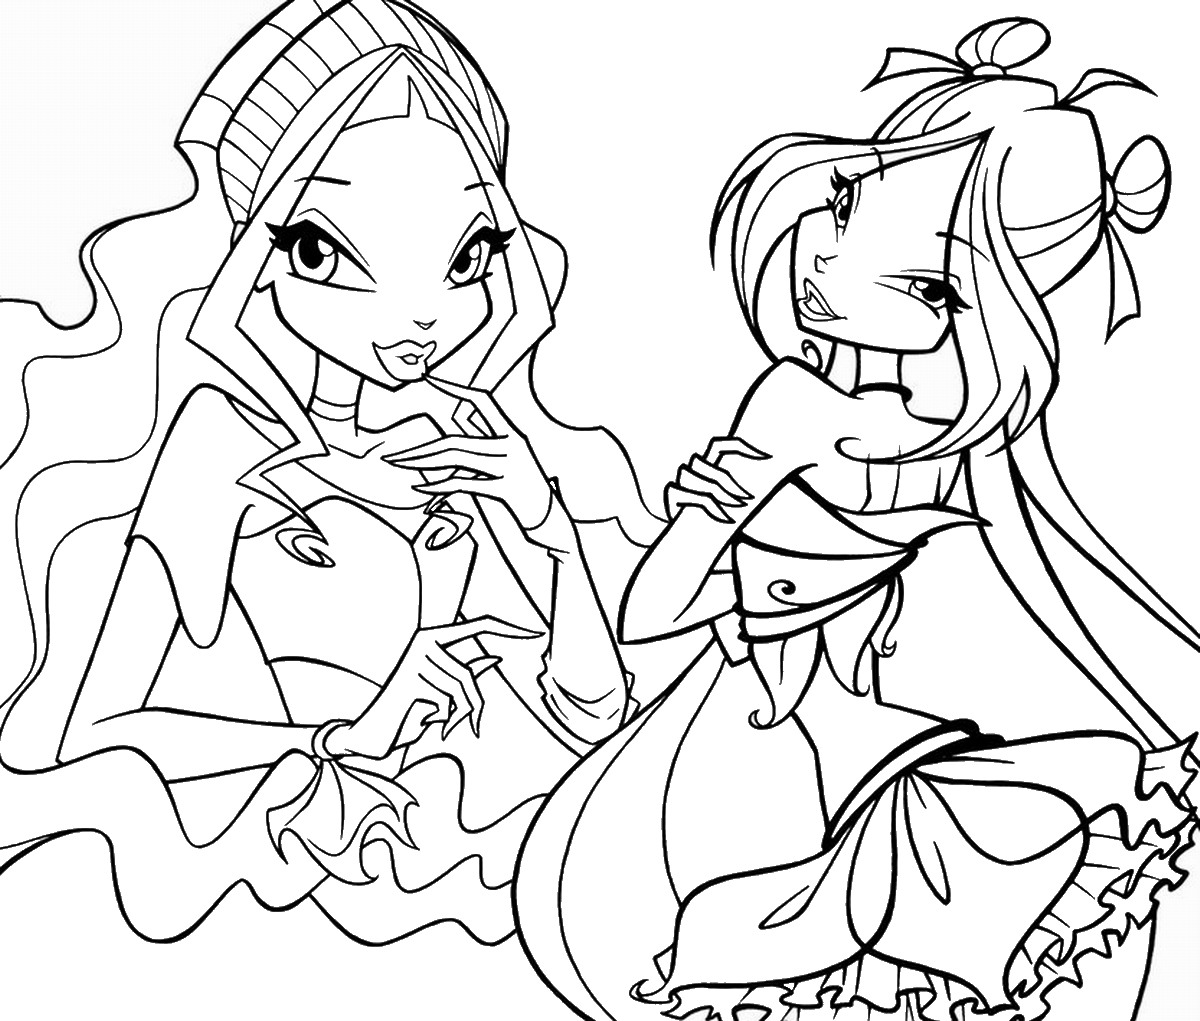 winx coloring pages online free printable winx coloring pages for kids cool2bkids online winx pages coloring